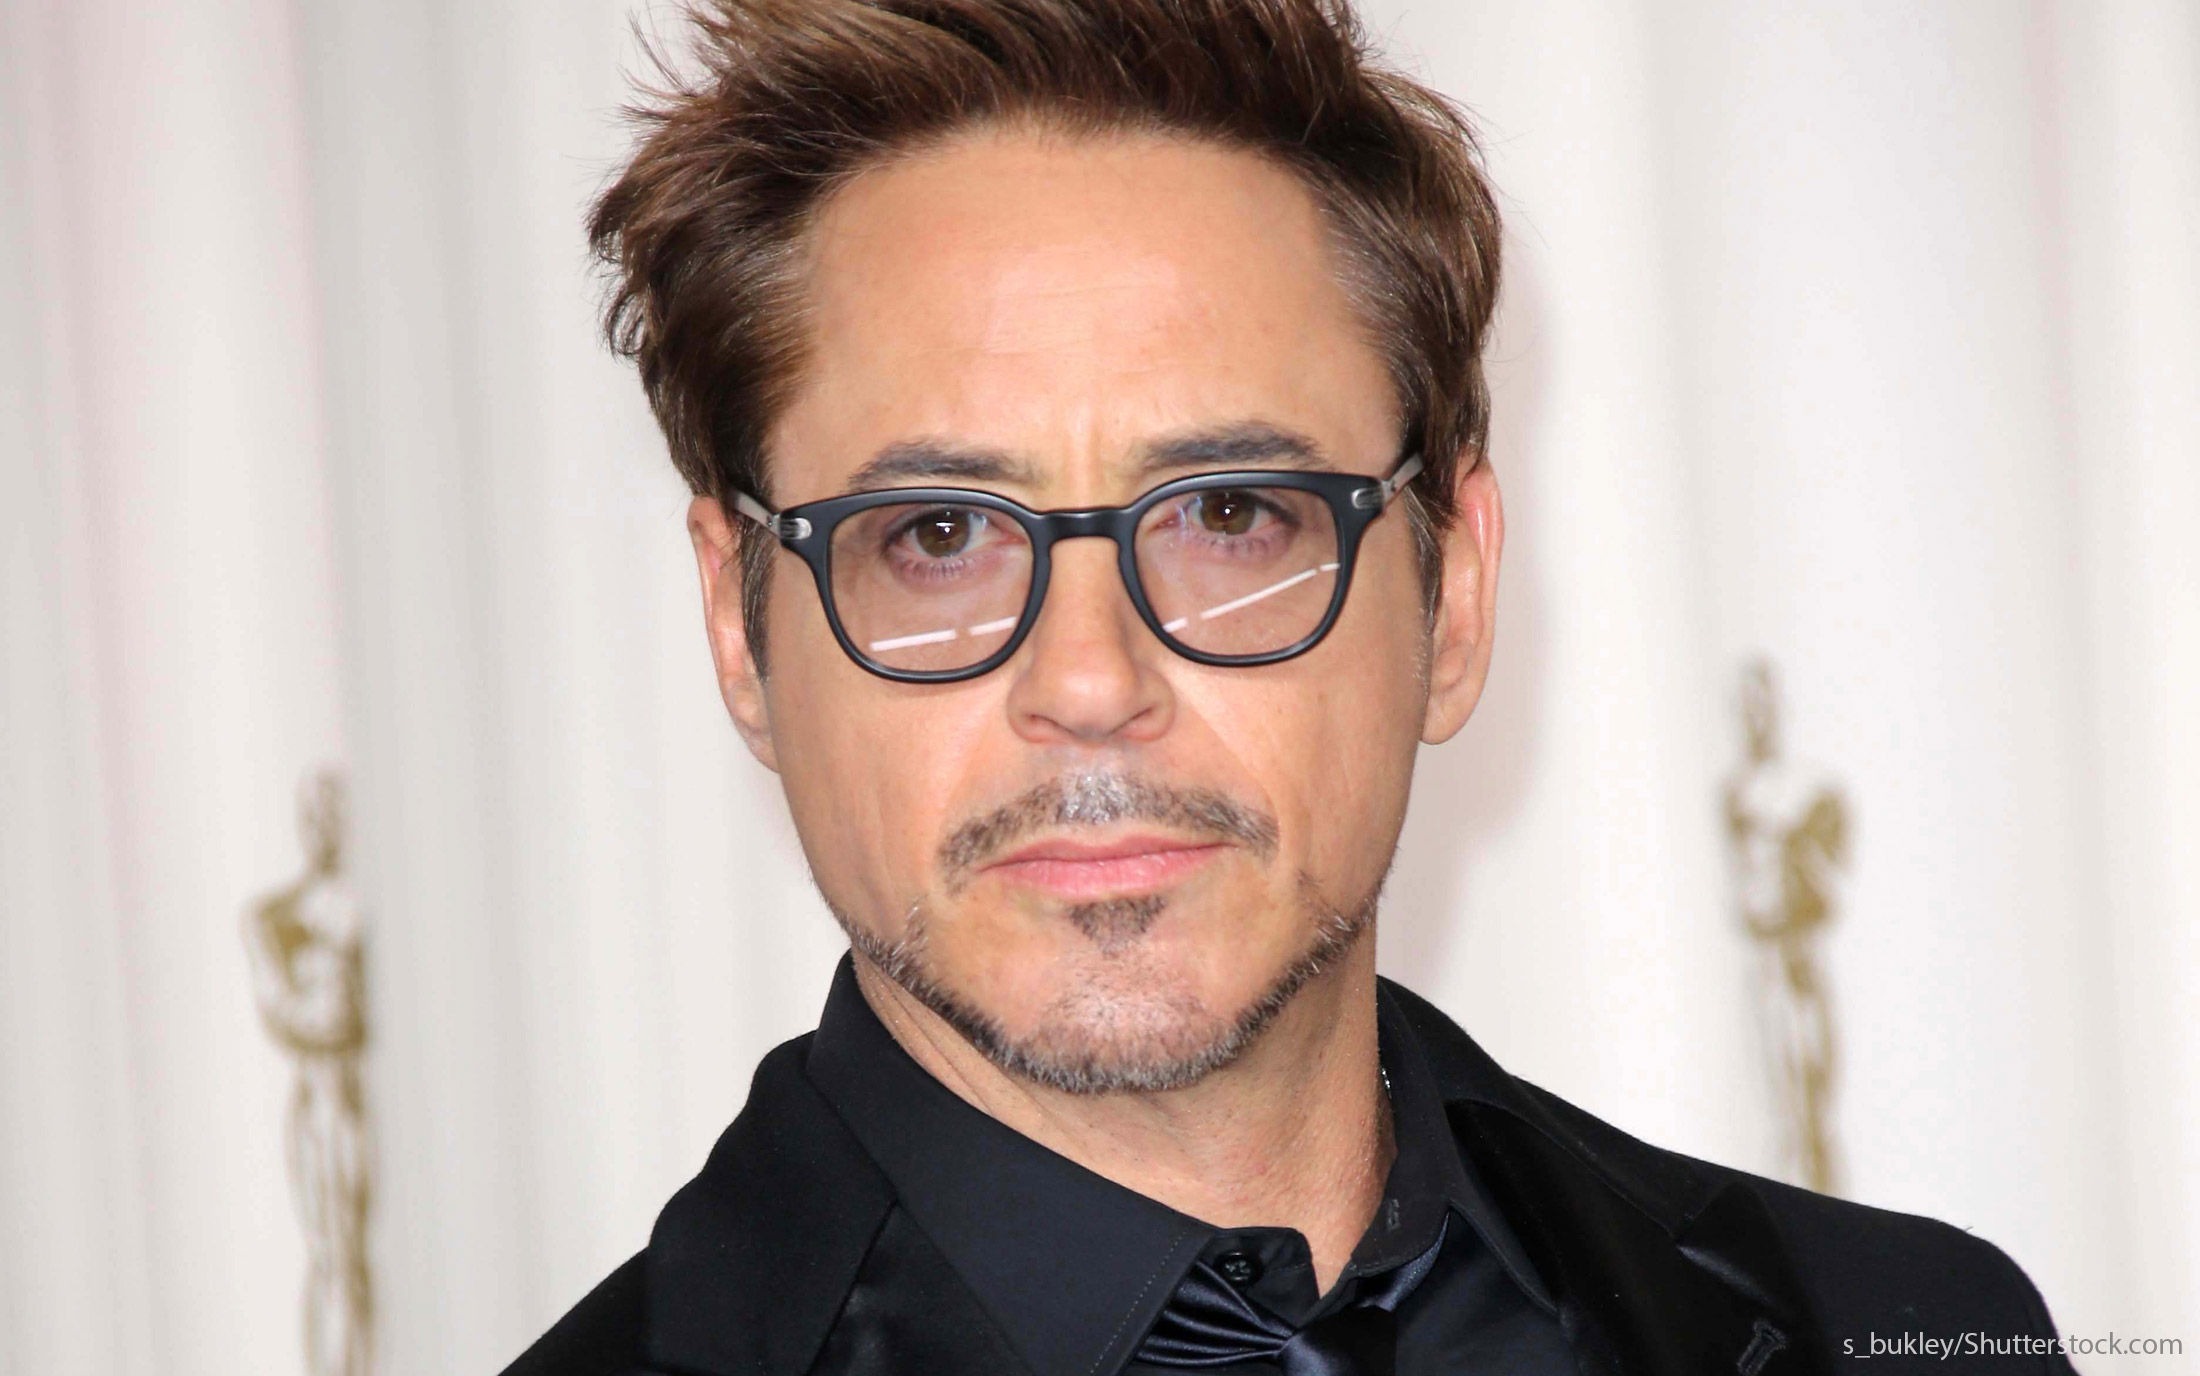 'Iron Man' Star Turns 51: A Look At Robert Downey Jr.'s